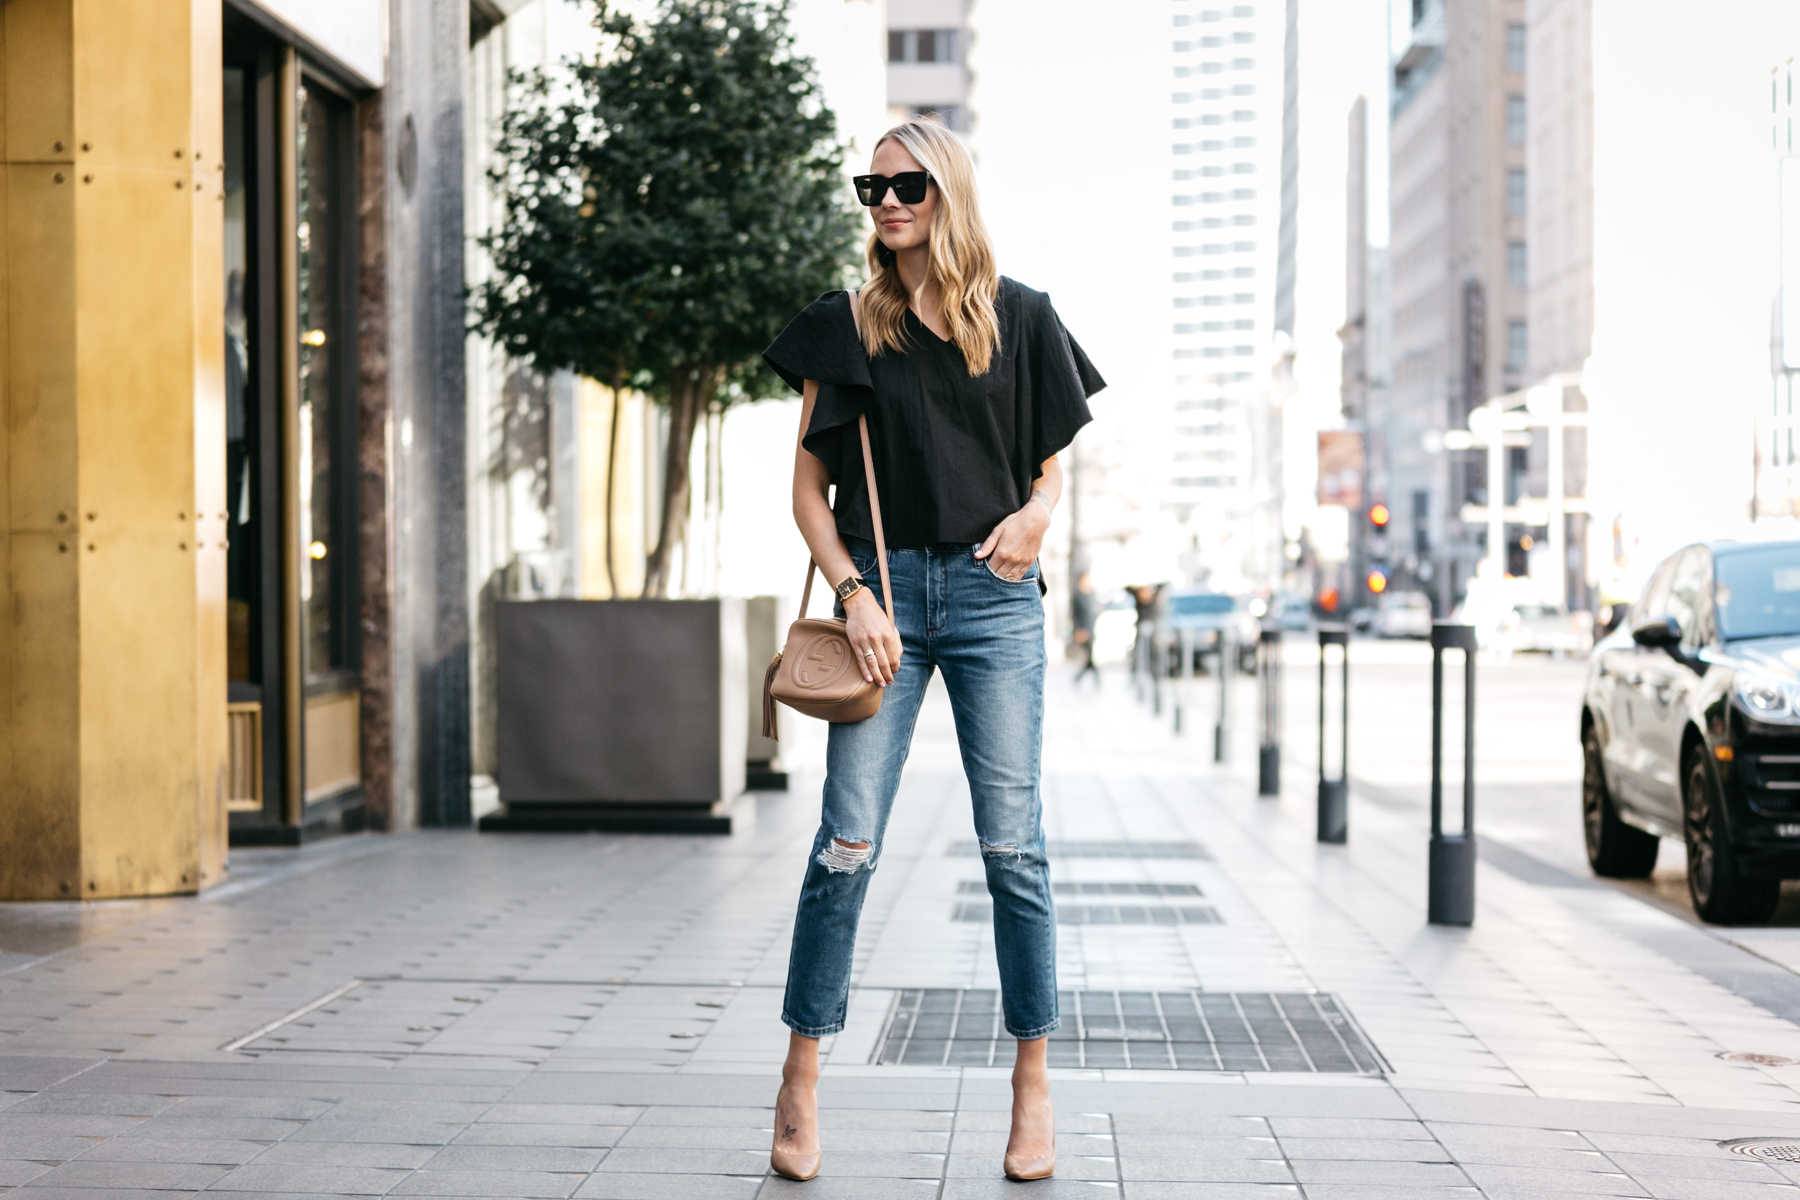 Black Ruffle Sleeve Top, Ripped Skinny Crop Jeans, Gucci Soho Disco Handbag, Nude Pumps